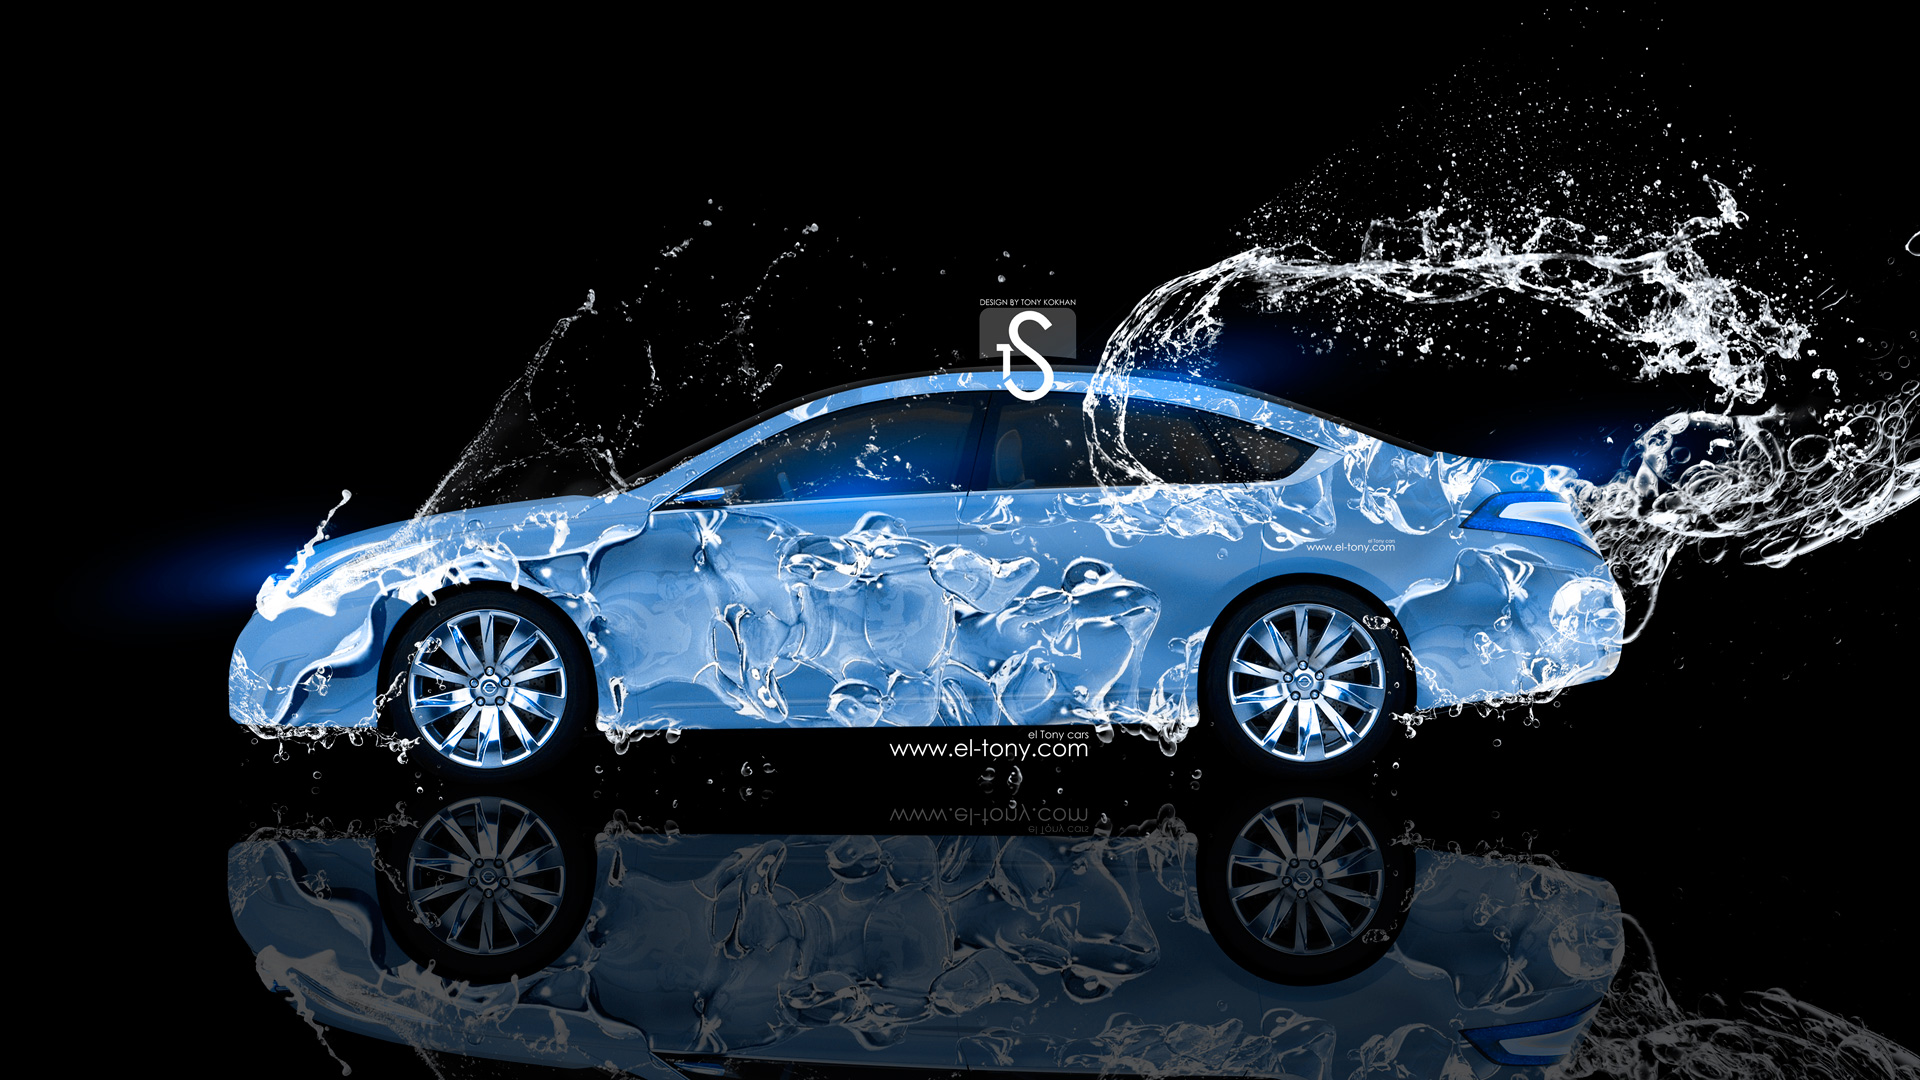 Nissan Intima Water Car 2013 Blue Neon HD